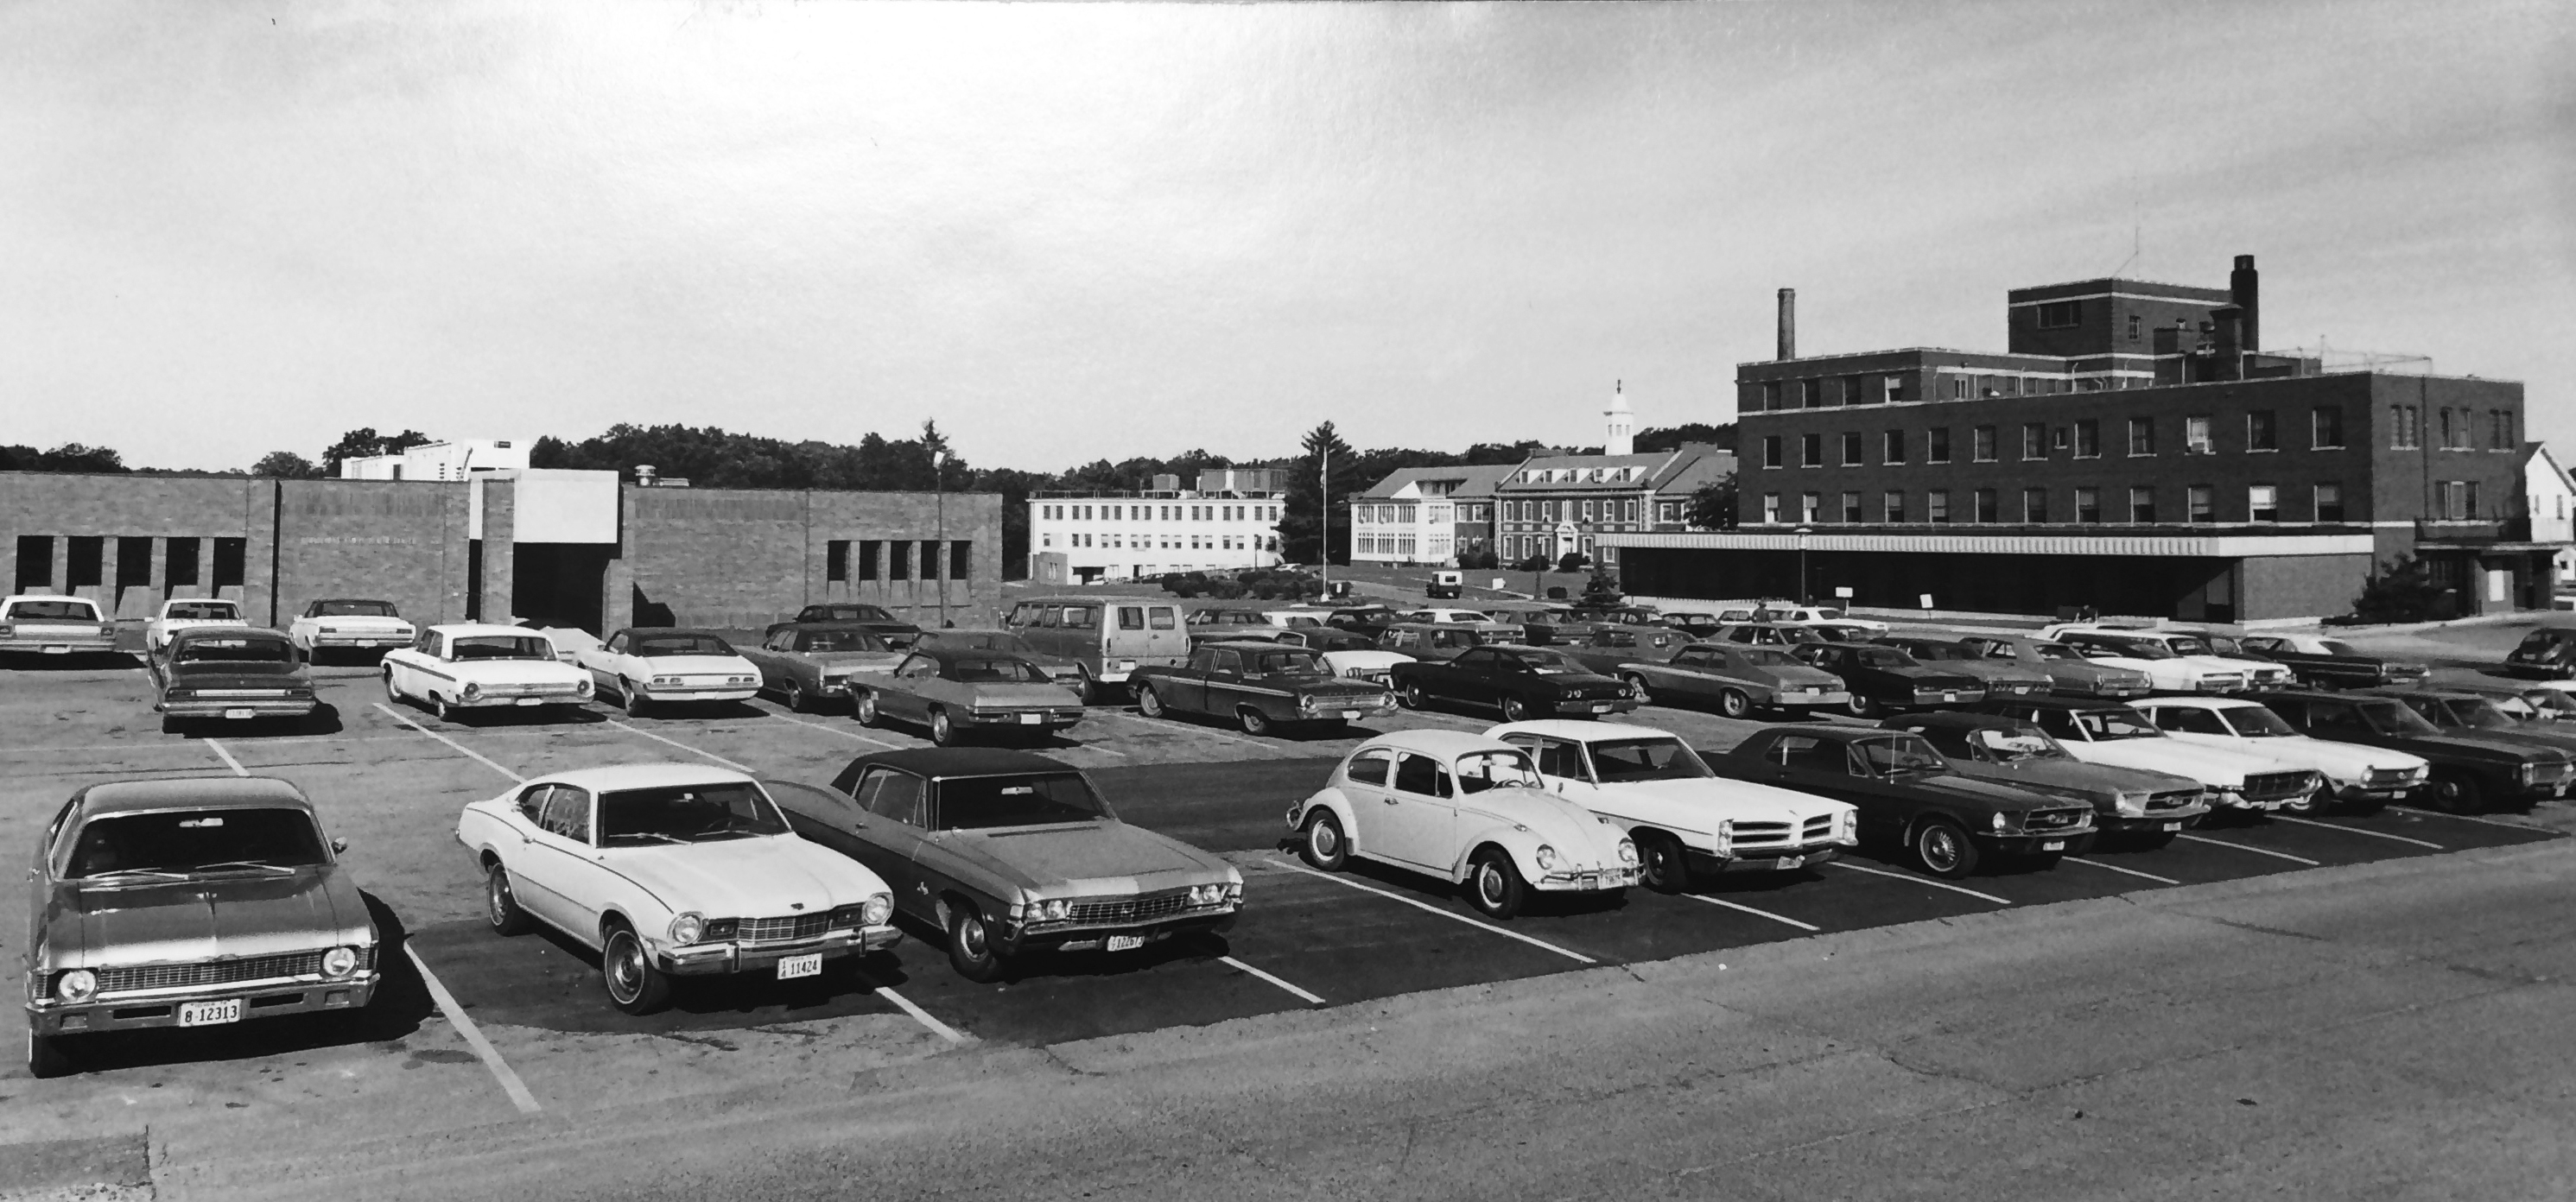 Broadlawns Family Health Center 1970 with time period cars